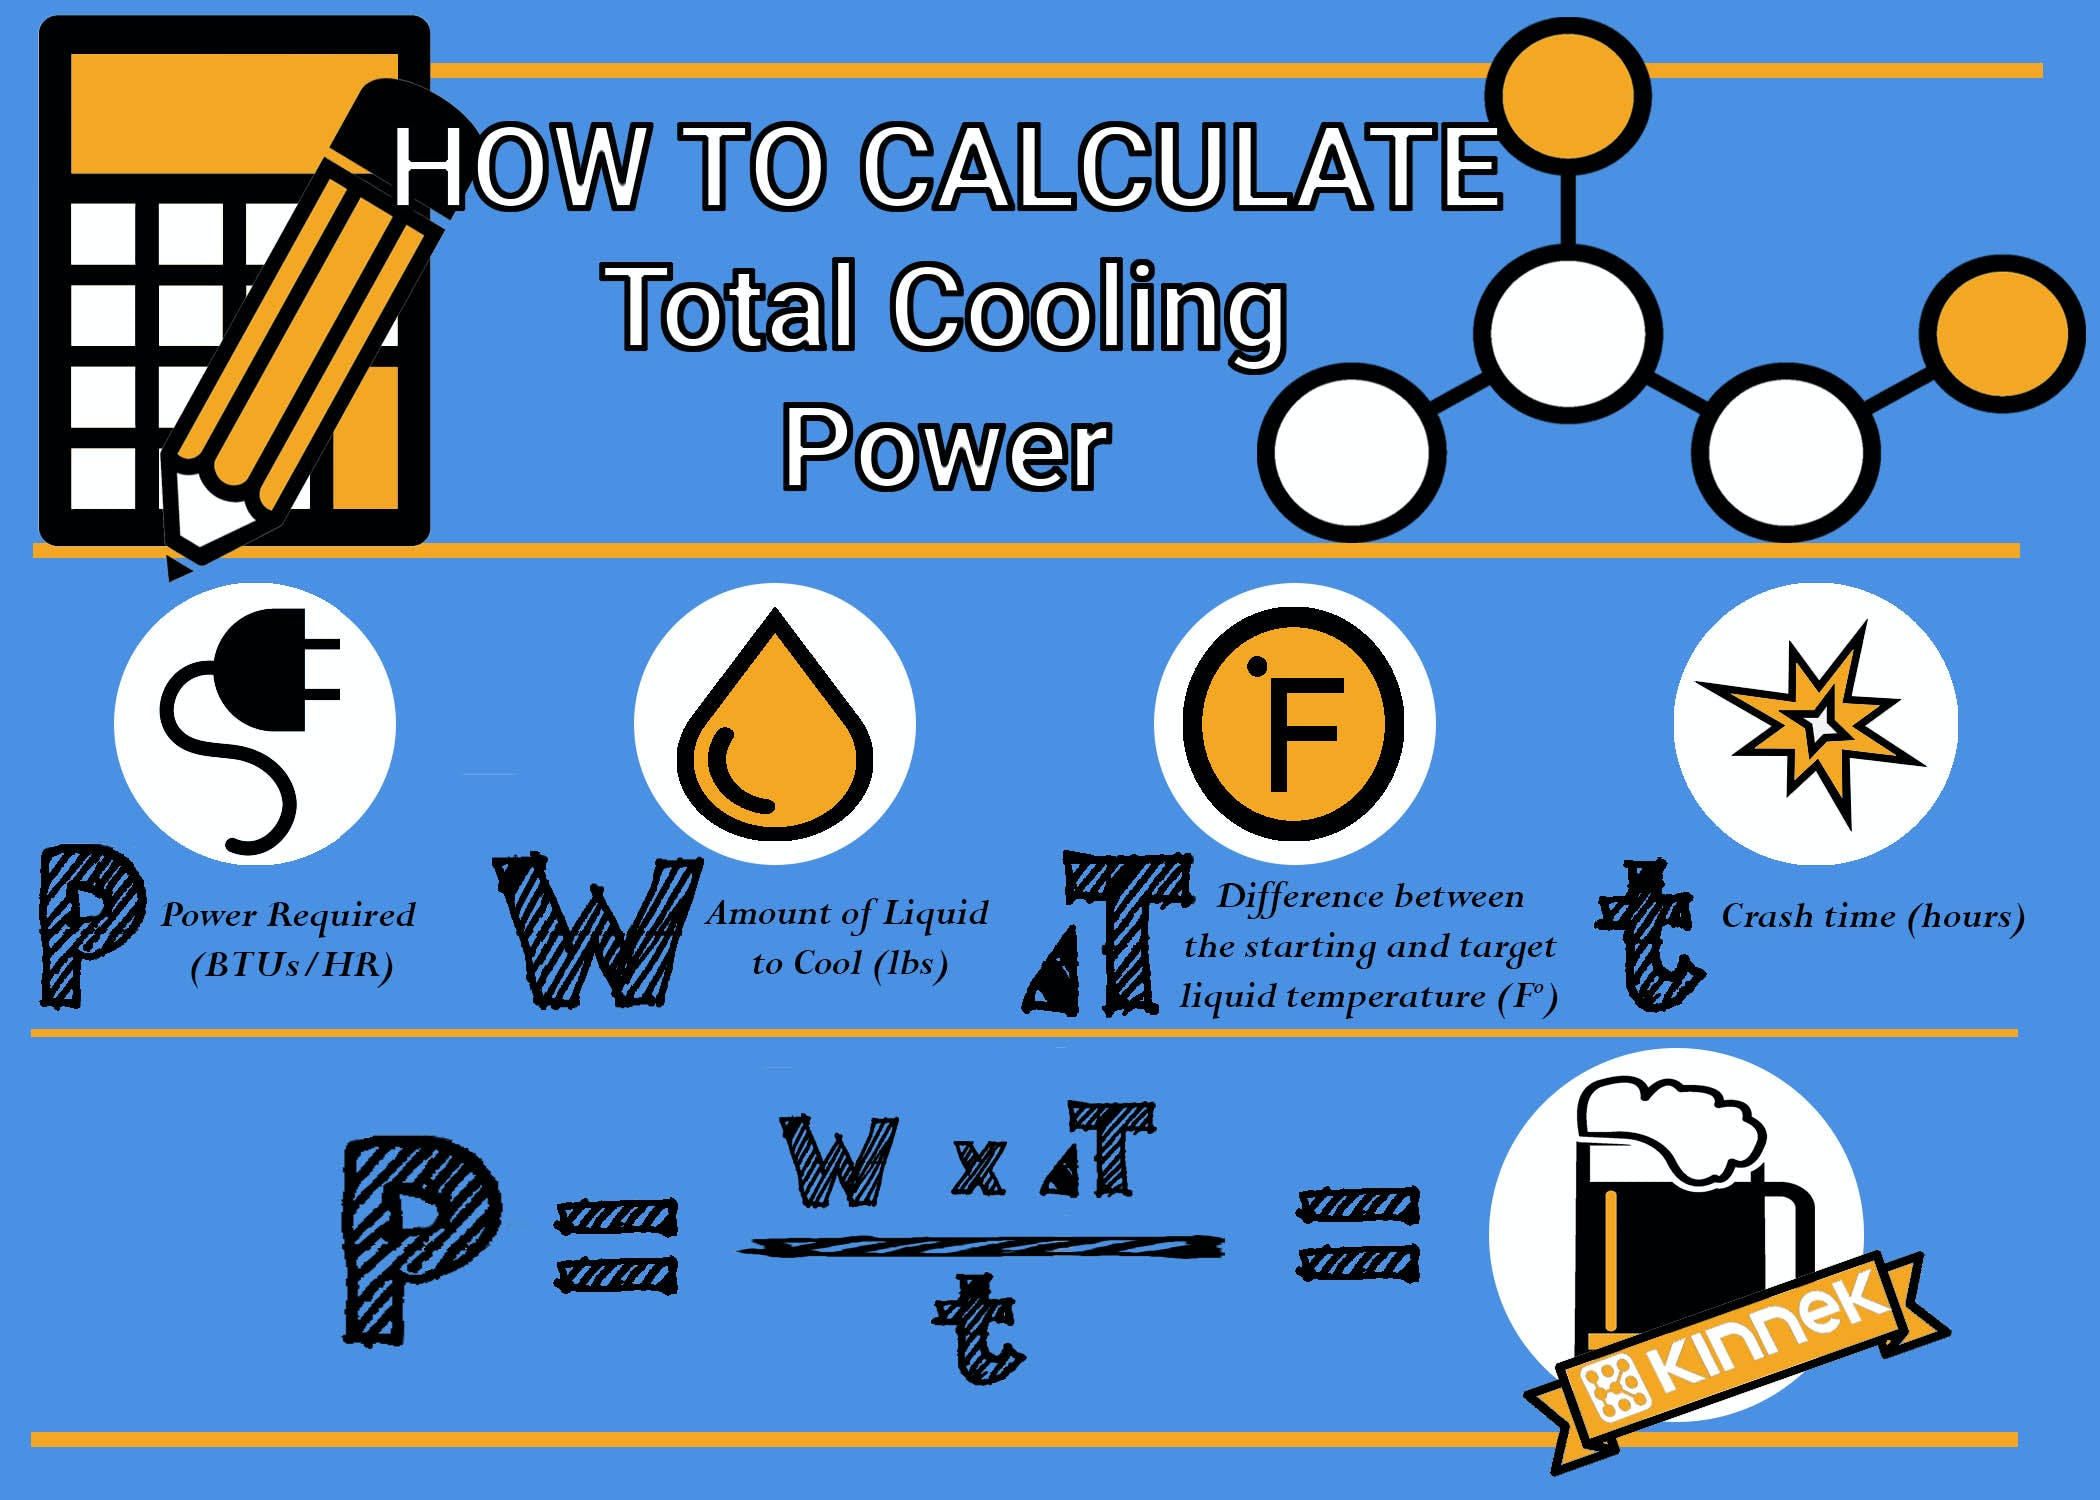 cooling power calculation for liquid volume BTU time